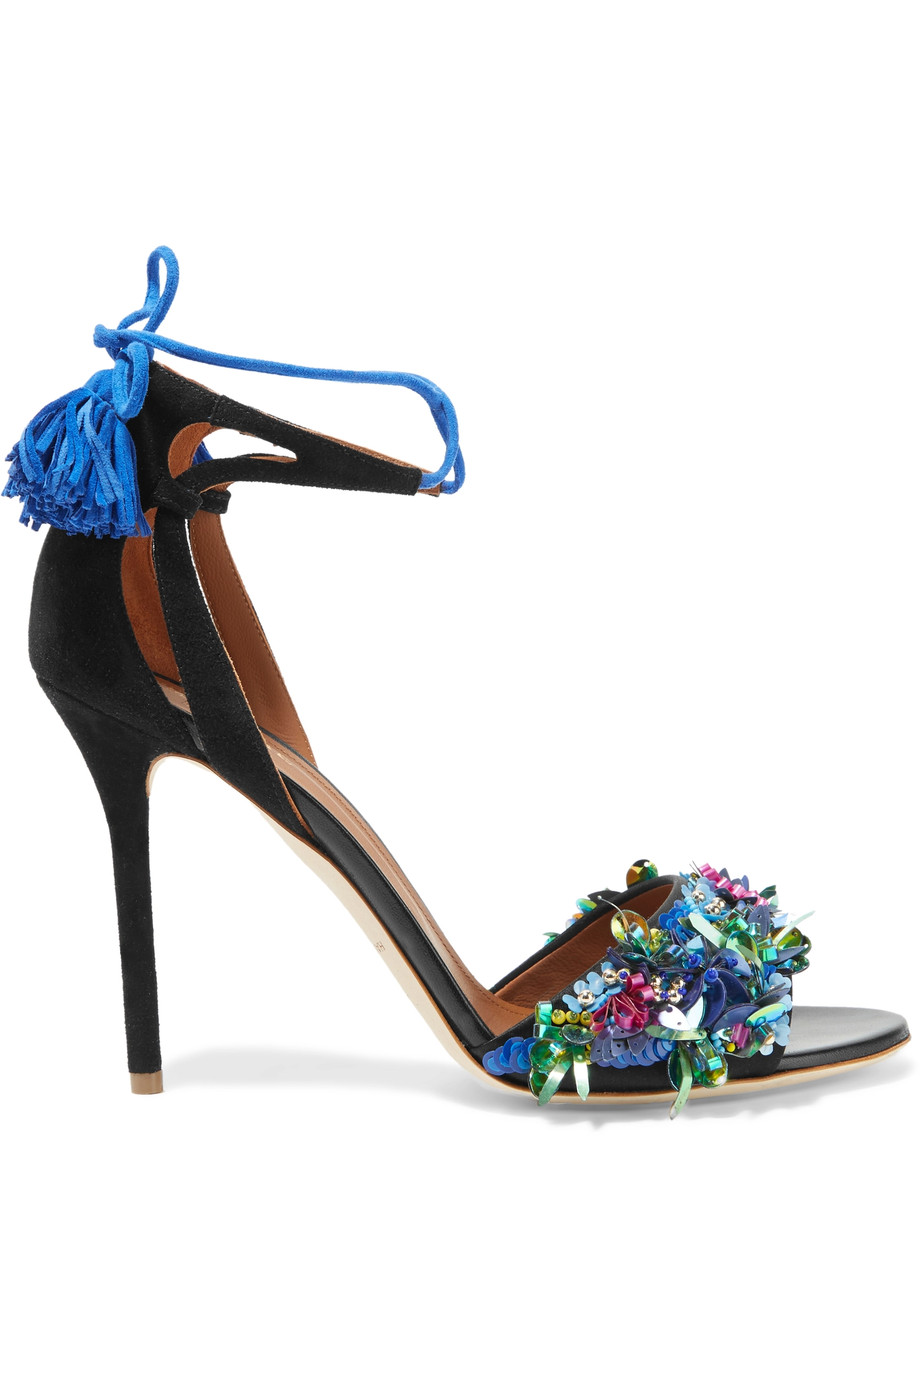 MALONE SOULIERS Gladys Leather-Trimmed Embellished Satin And Suede Sandals